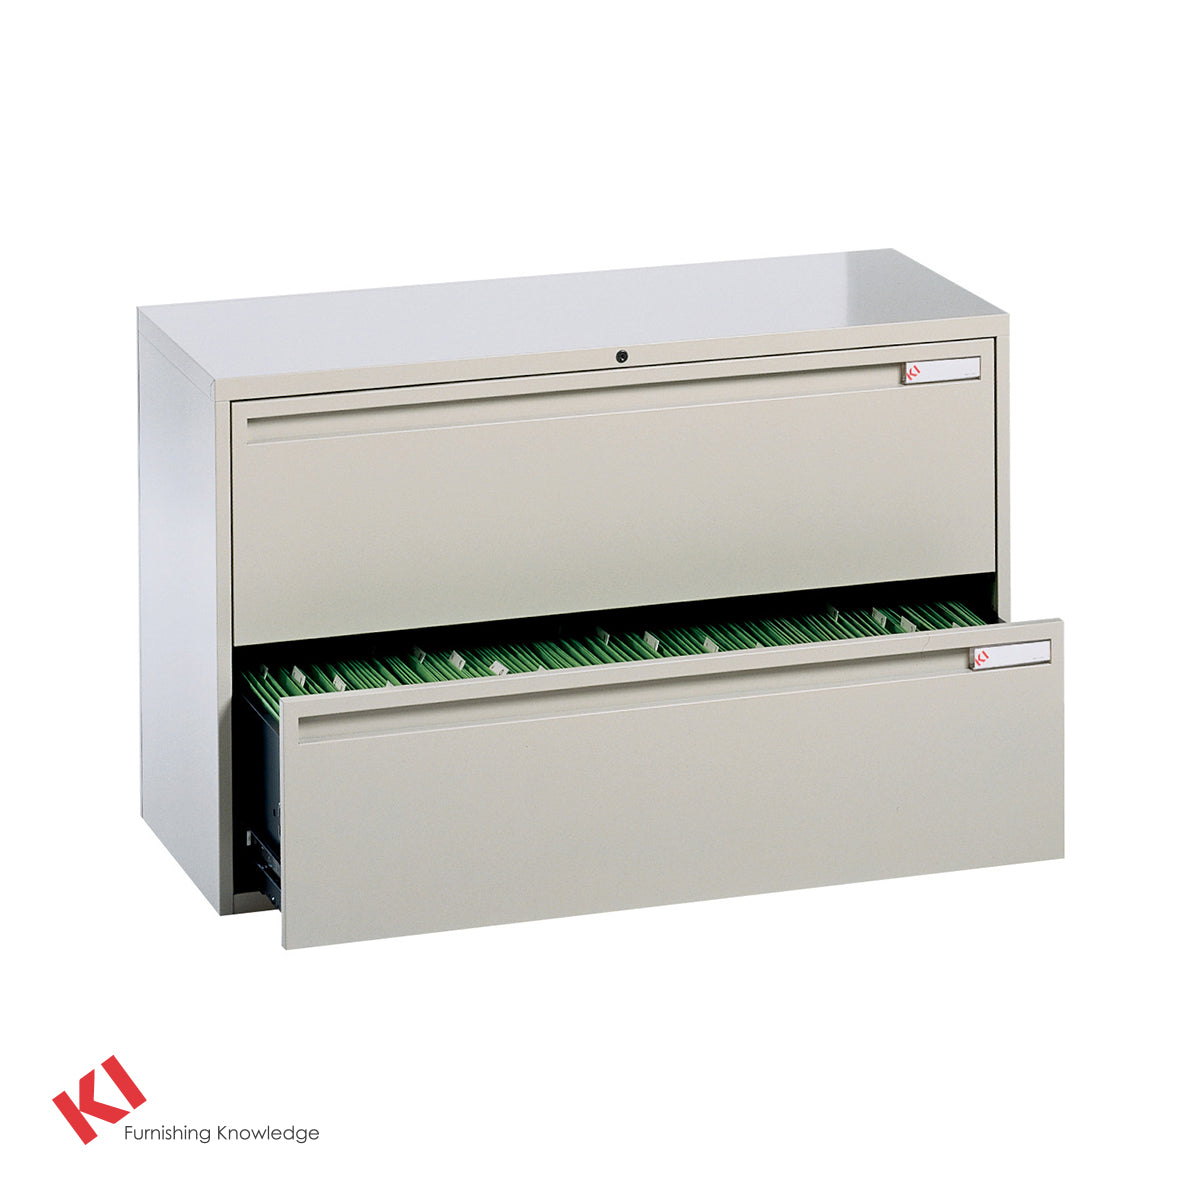 700 Series Lateral File Cabinet